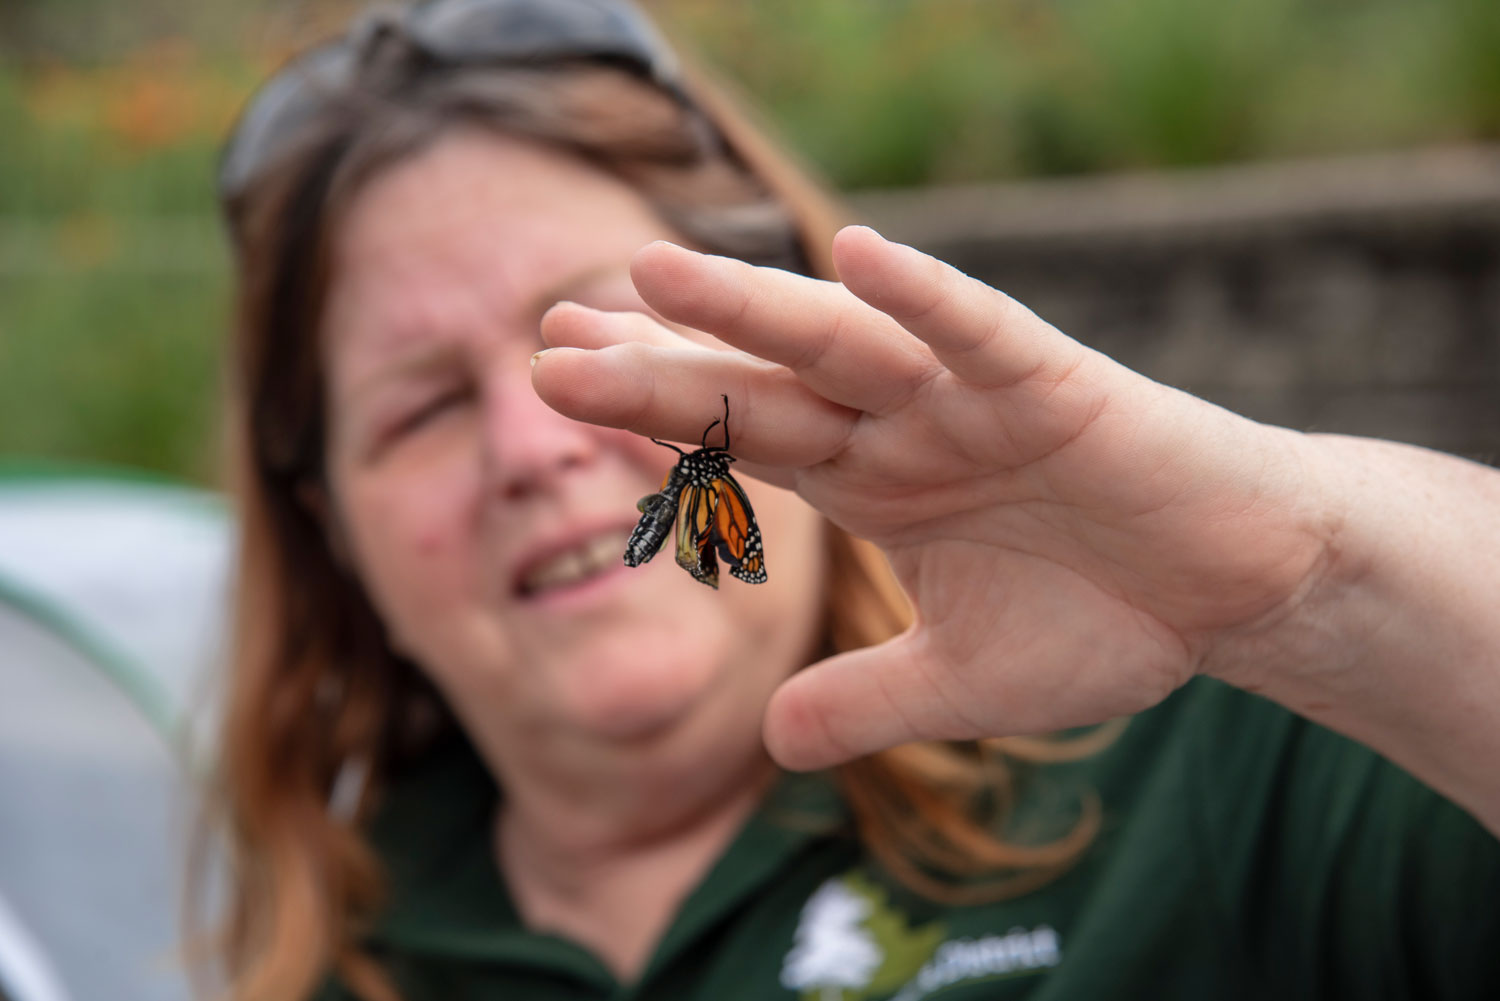 Photo for: For Barb Ferry, Raising Monarchs Is More Than a Hobby